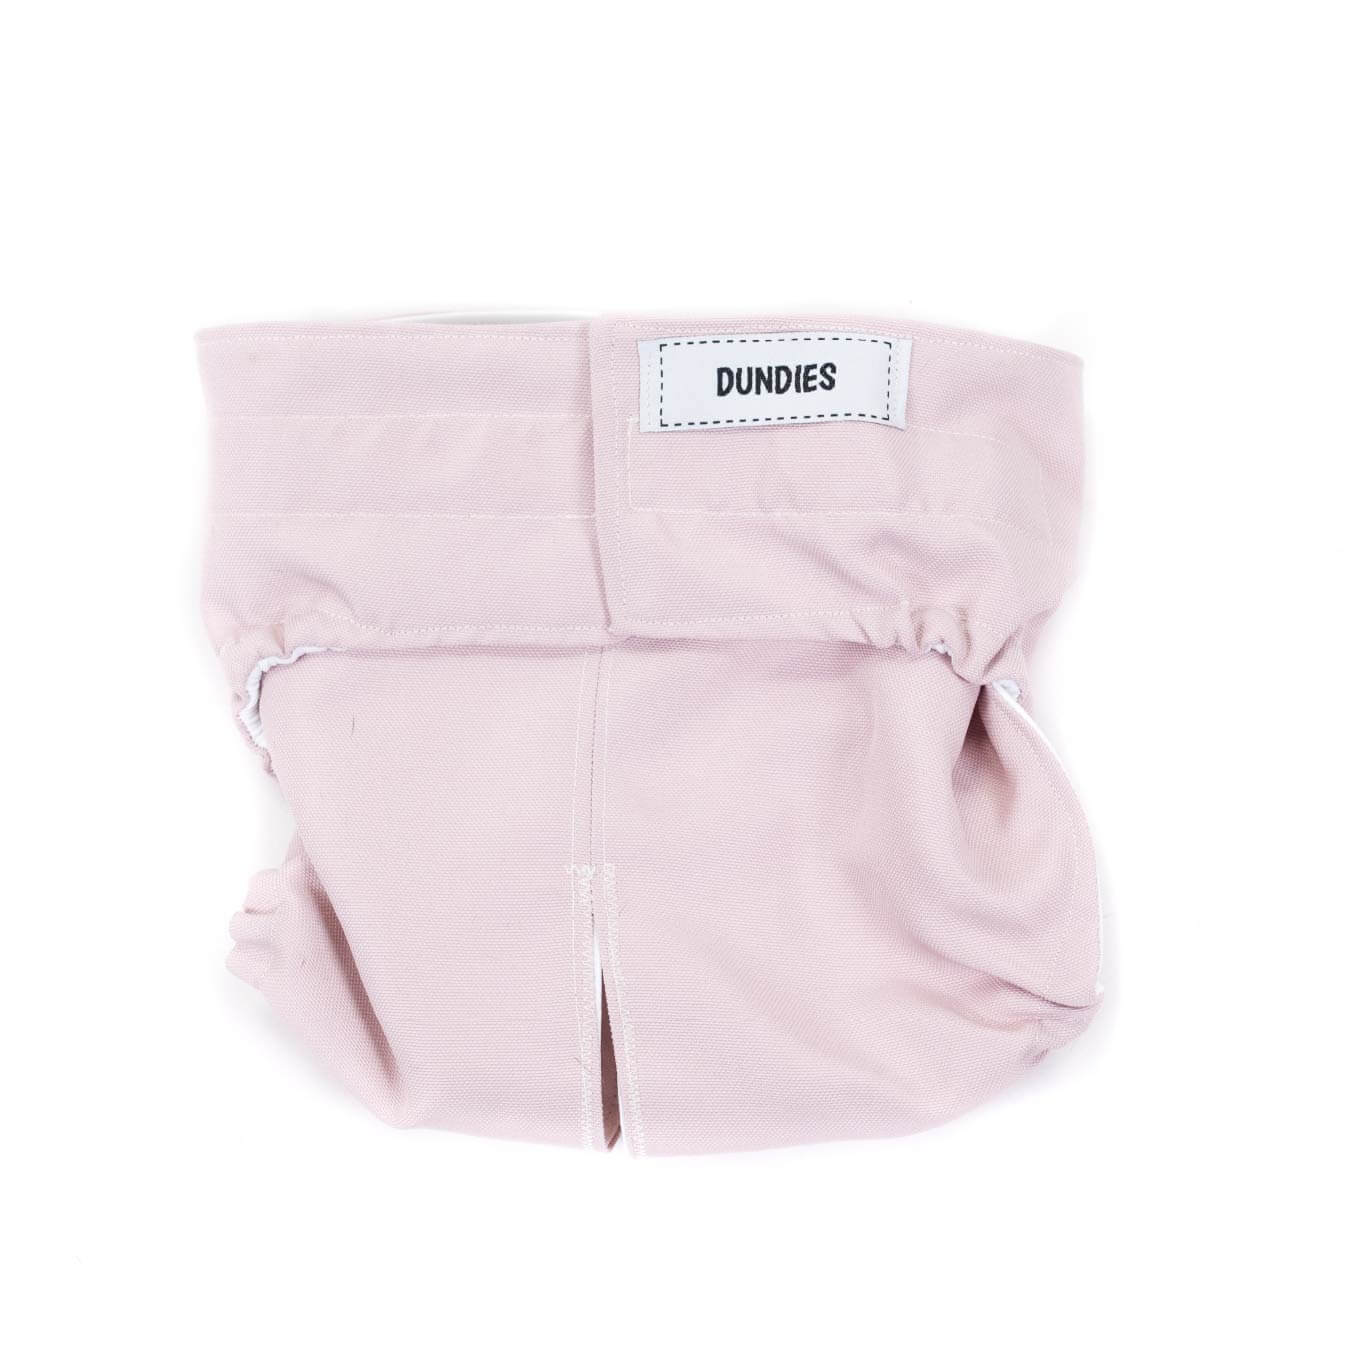 Dundies Dusty Pink All In One Nappy